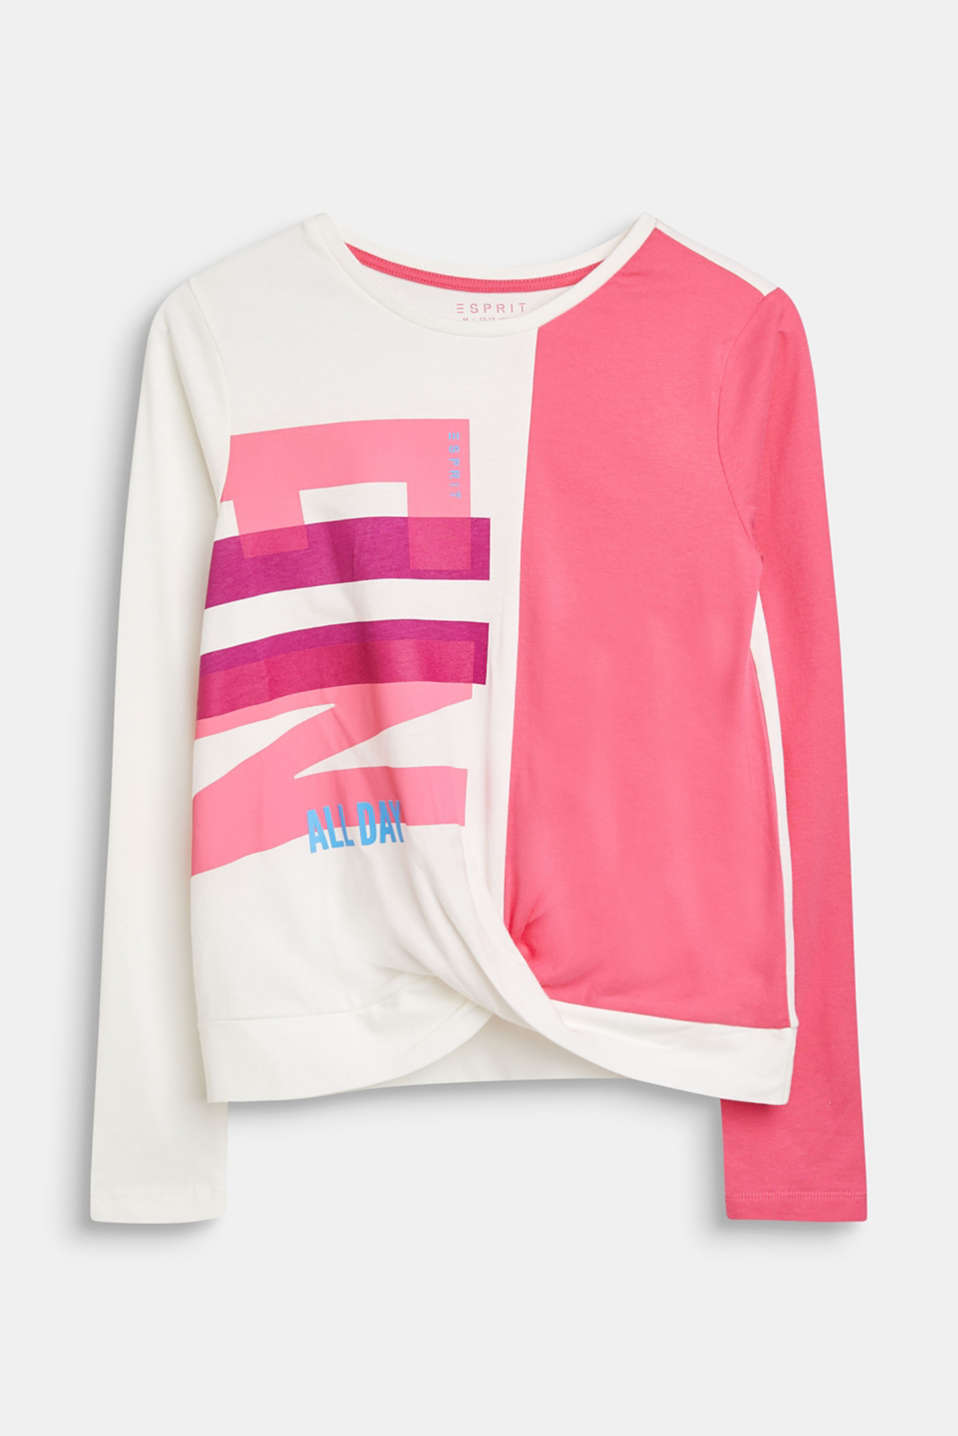 Esprit : Sweat shirt au look color block, 100 % coton à